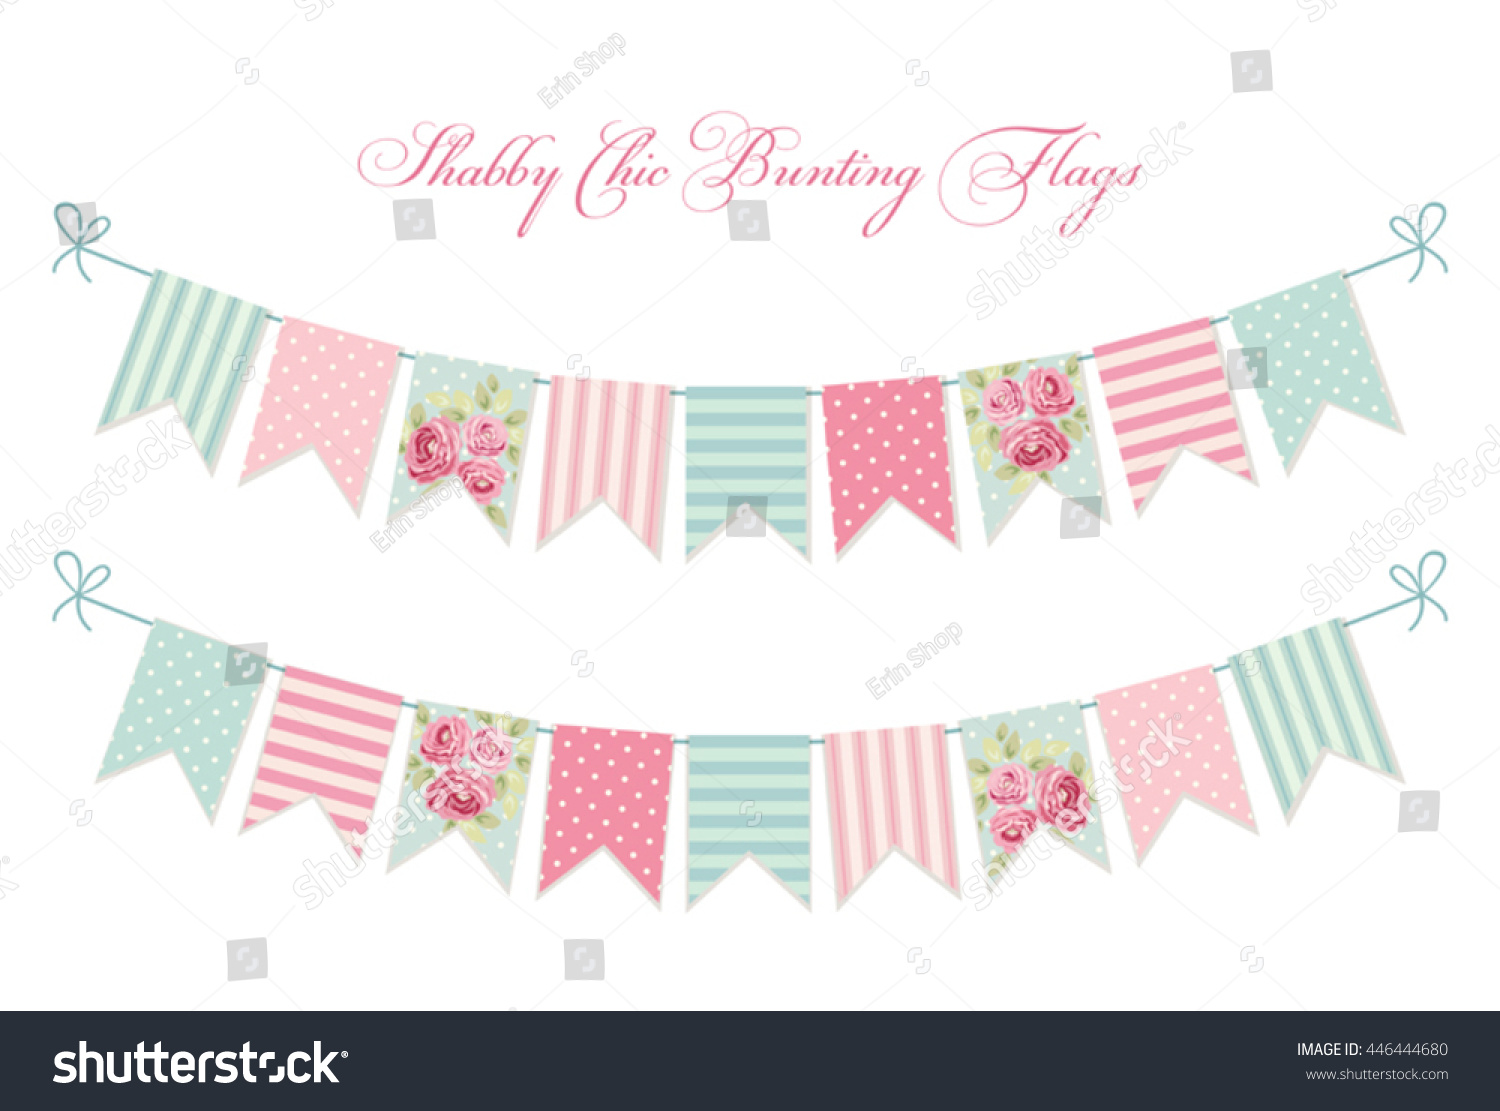 Vector bunting flags lovely celebration card with colorful paper - Cute Vintage Shabby Chic Textile Bunting Flags Ideal For Wedding Birthday Bridal Shower